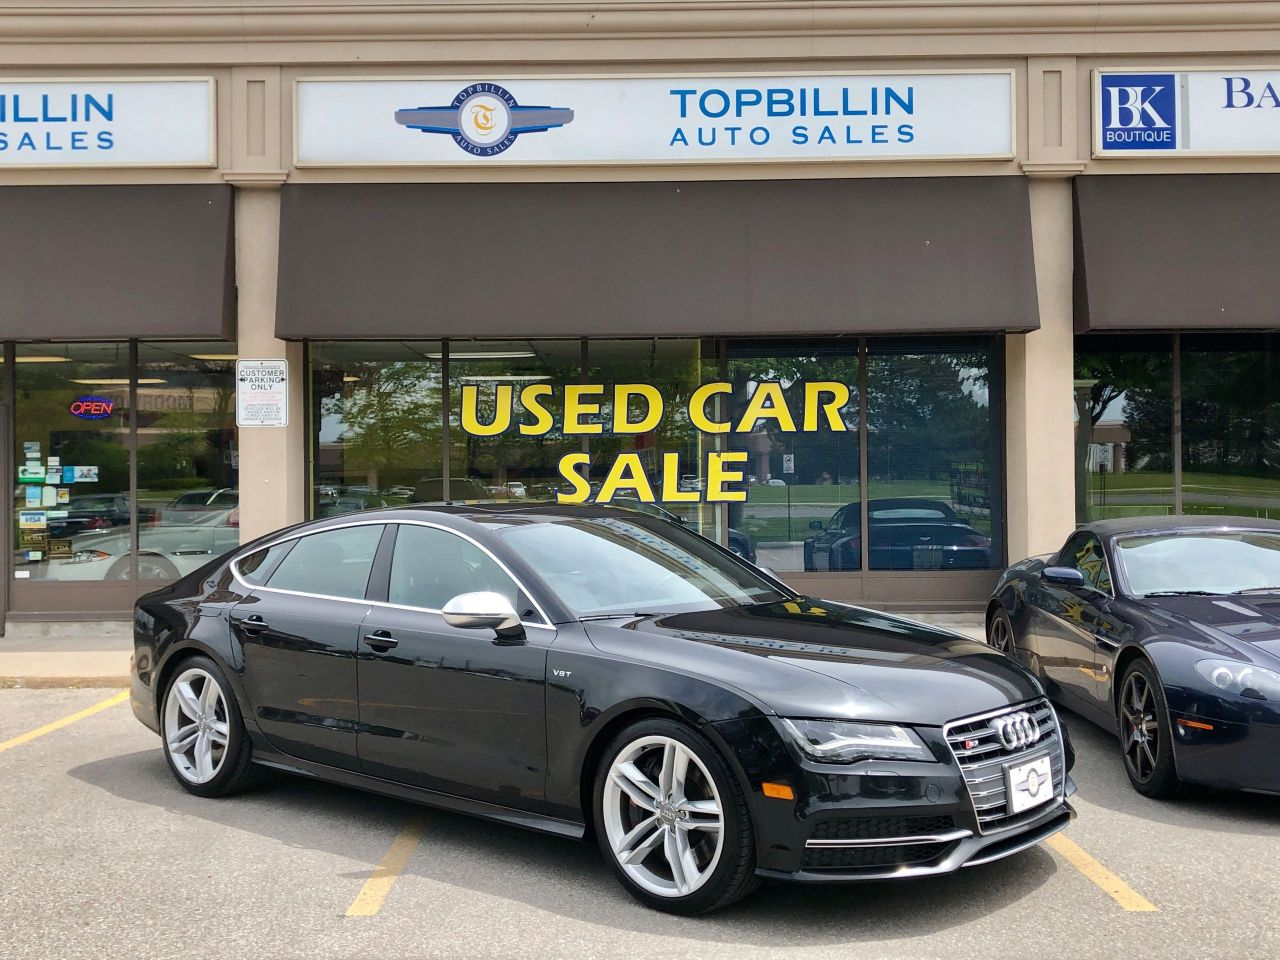 2013 Audi S7 Fully Loaded, Clean CarFax